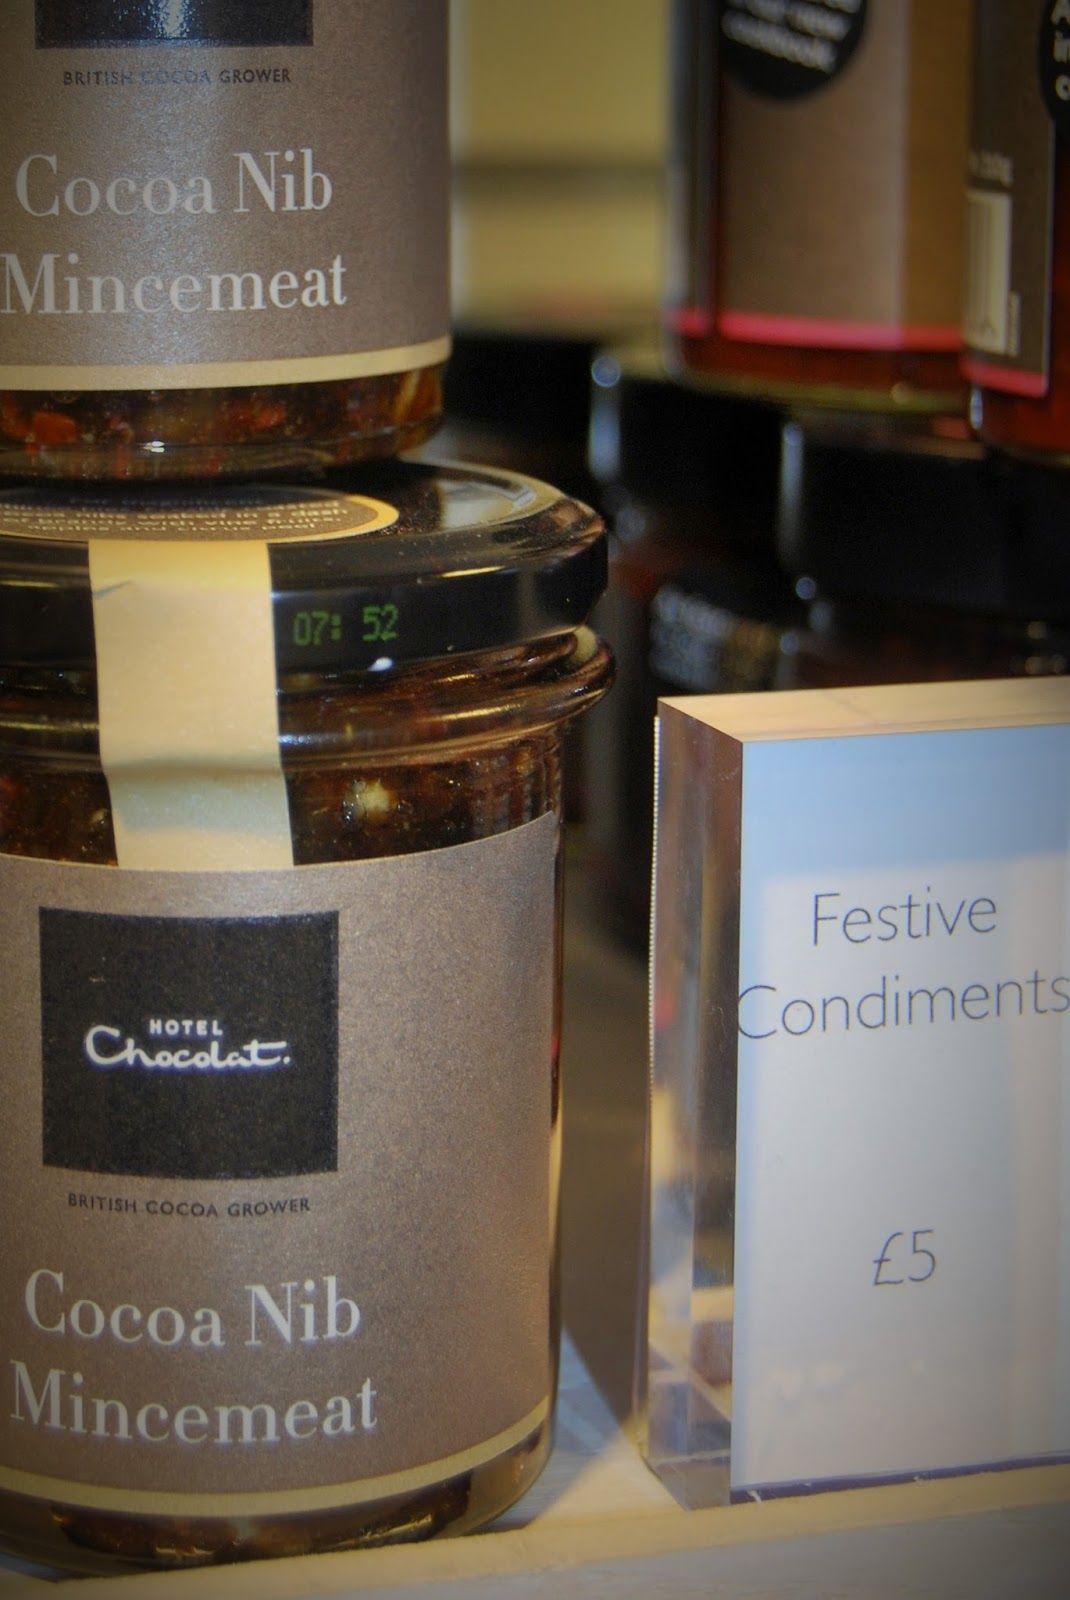 Chocolate mincemeat, Hotel Chocolat Christmas Cracker Giveaway, photo by Modern Bric a Brac